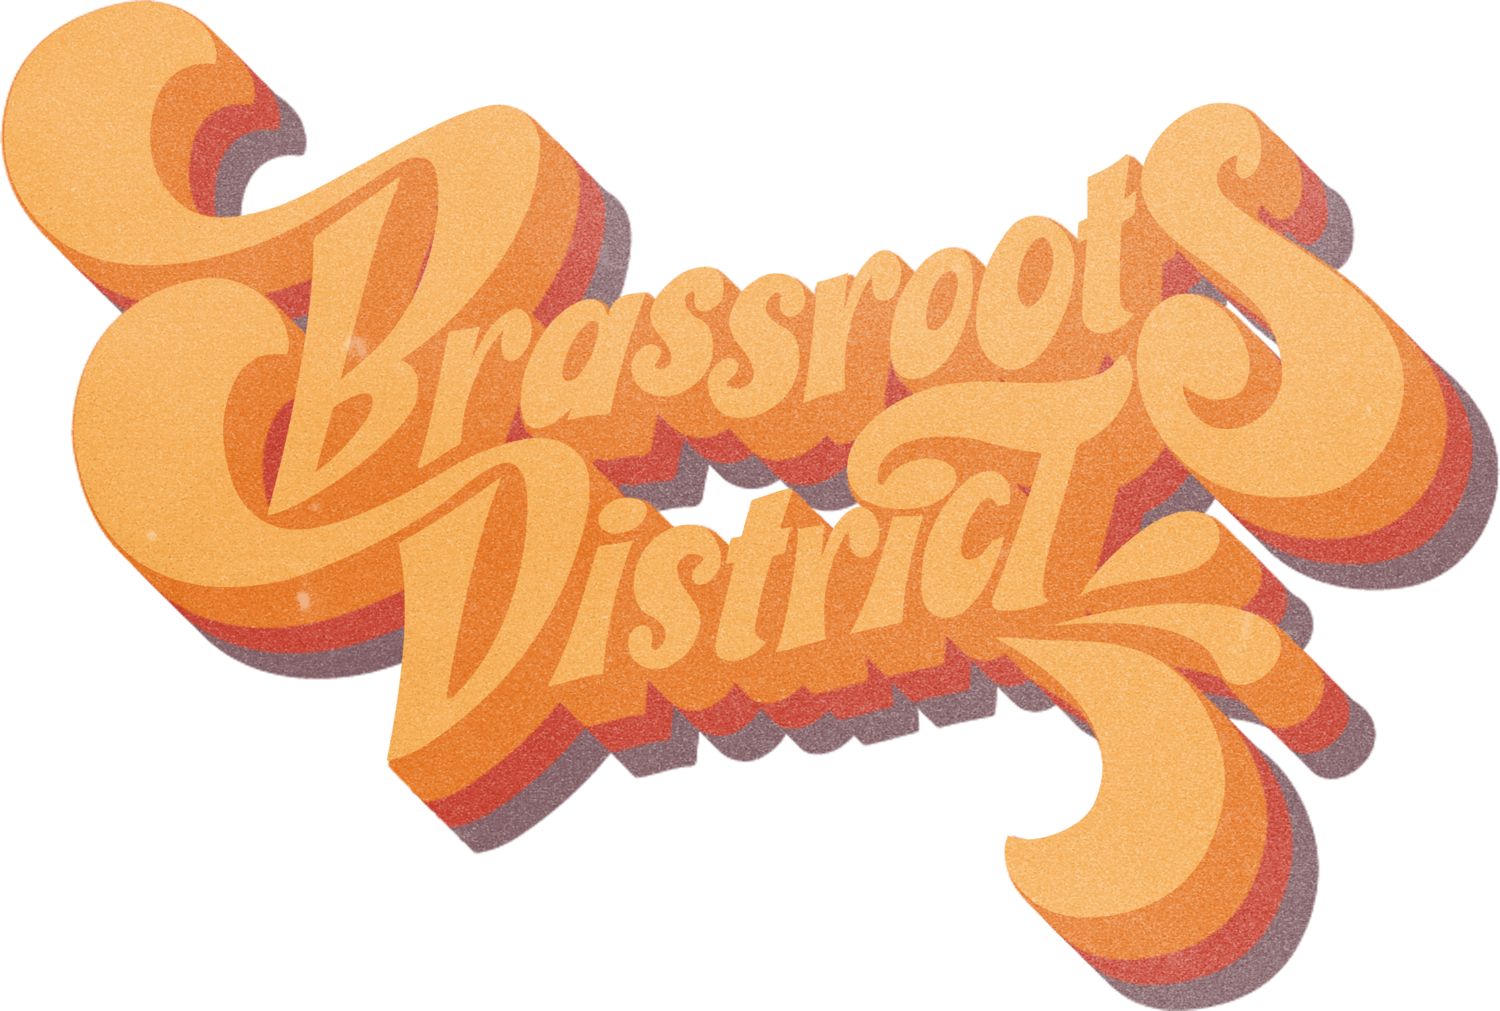 Brassroots District